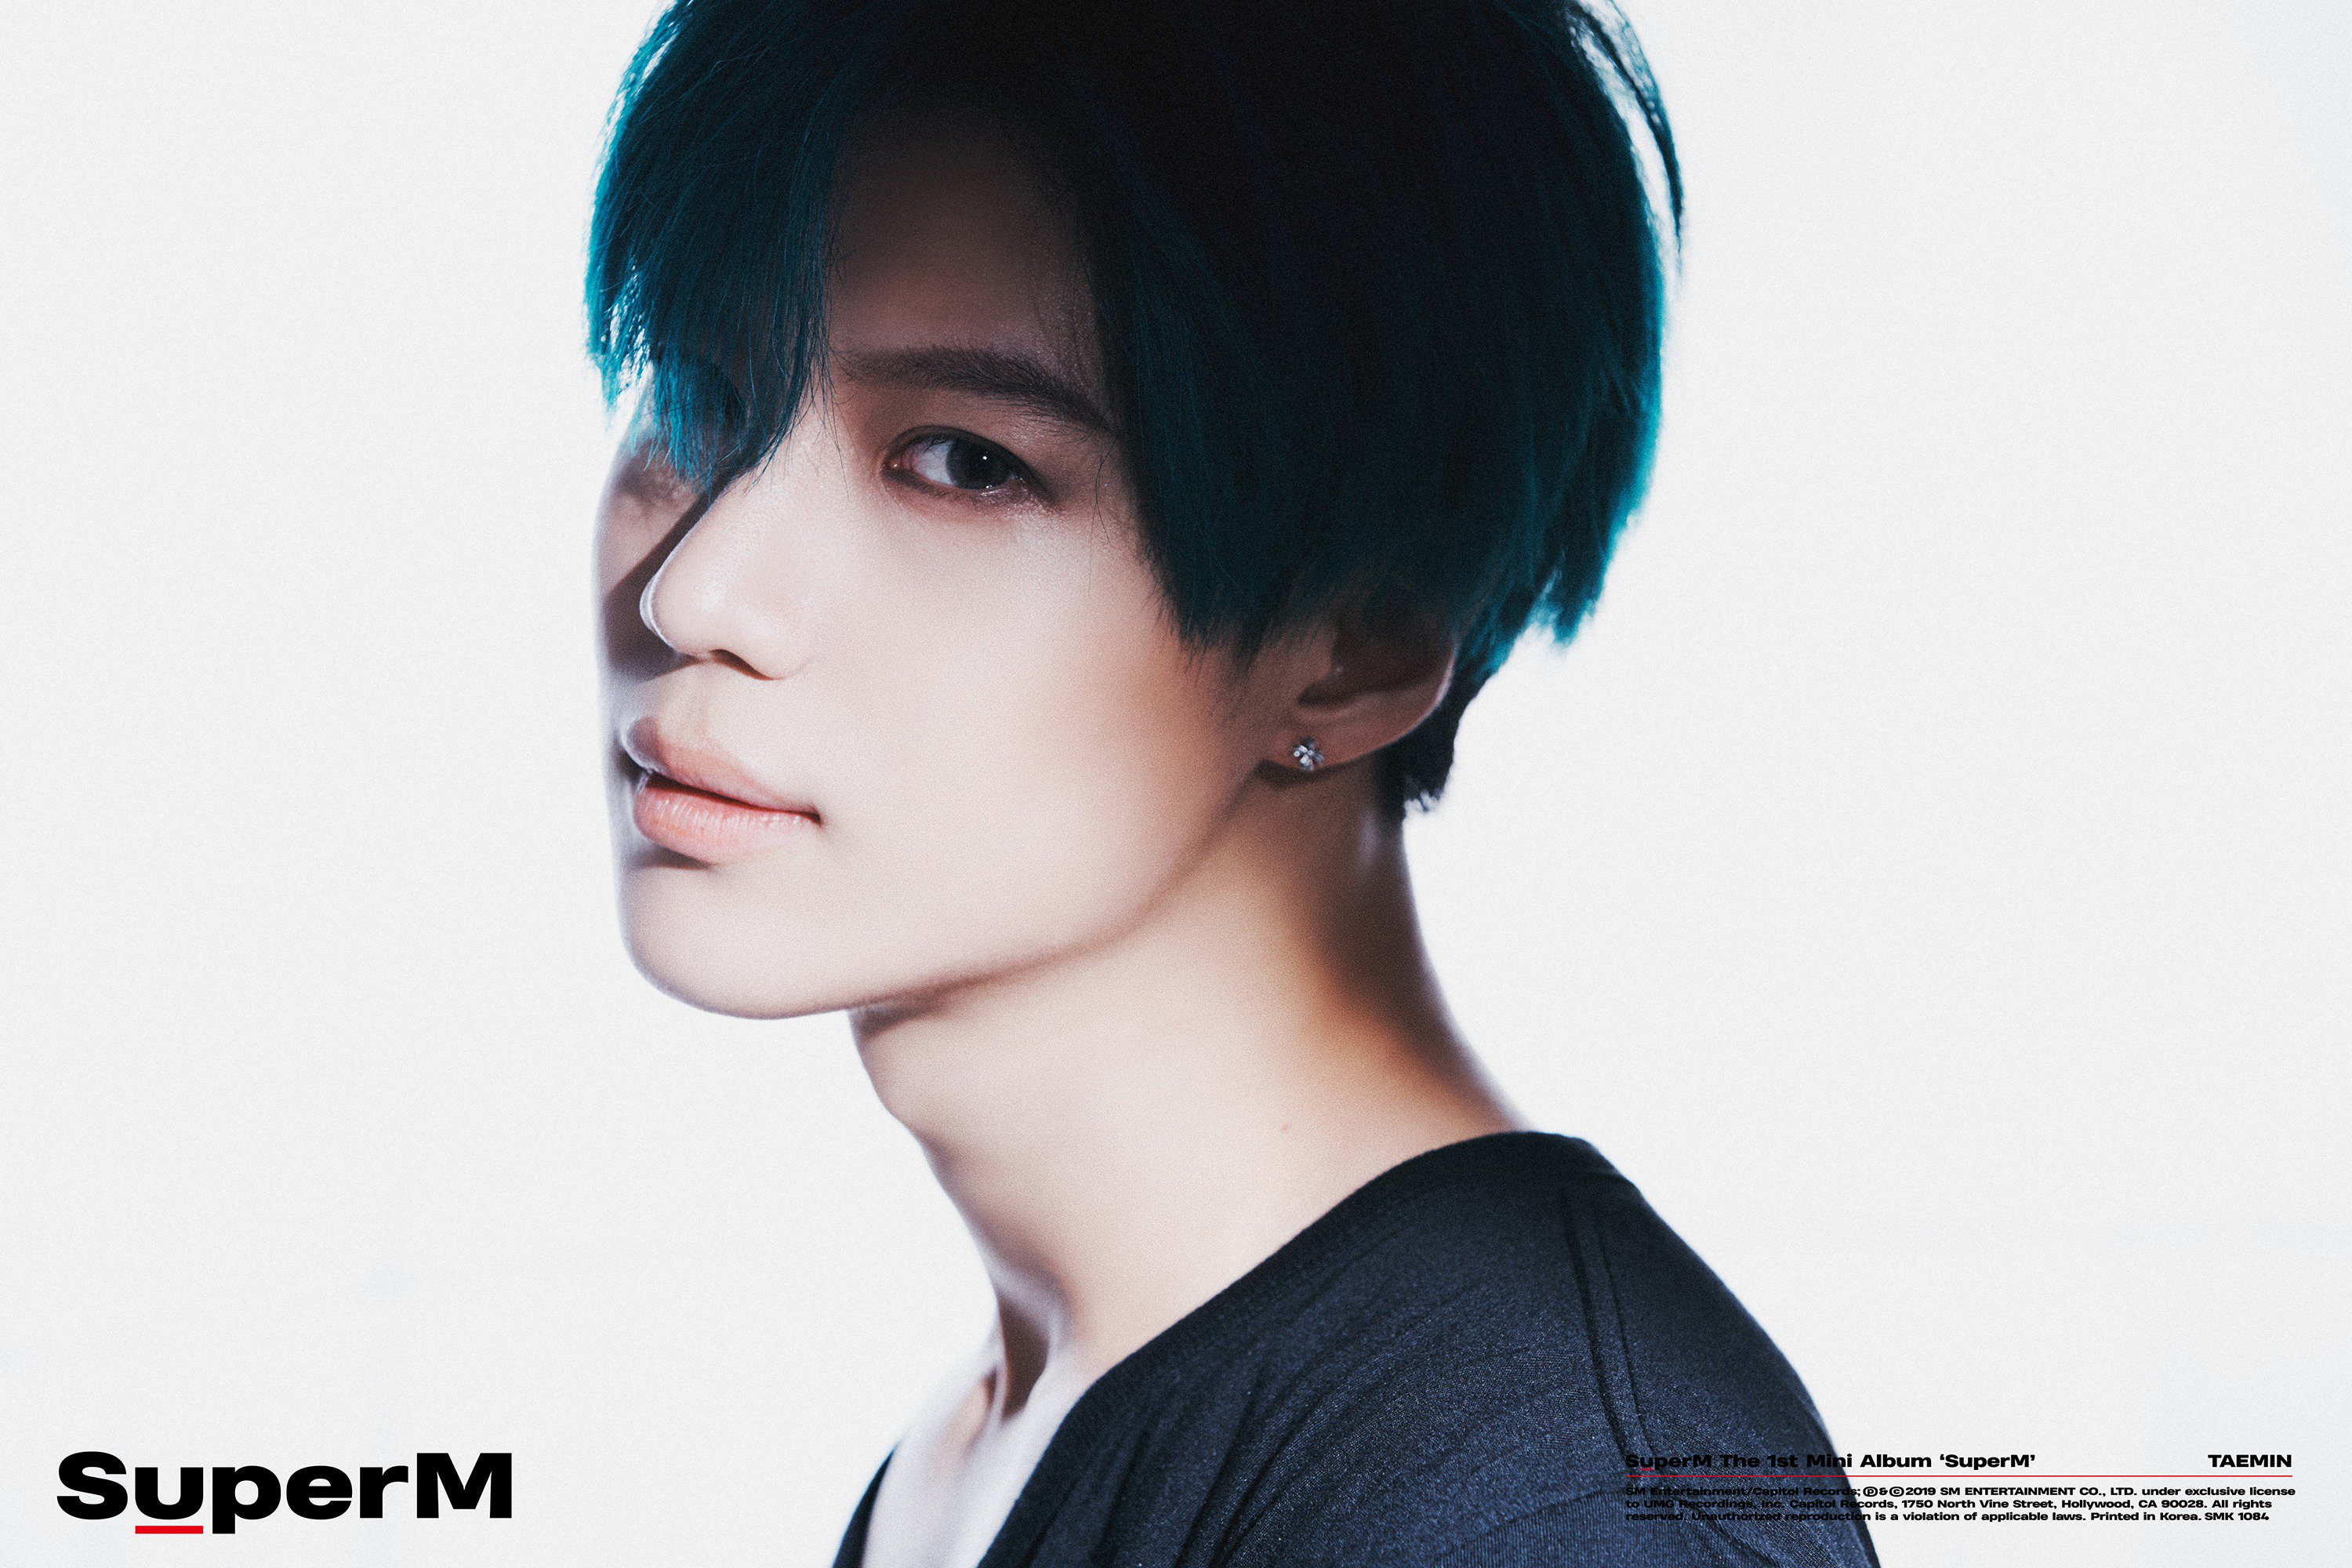 Taemin, sporting blue hair, looks into the camera for his portrait teaser.